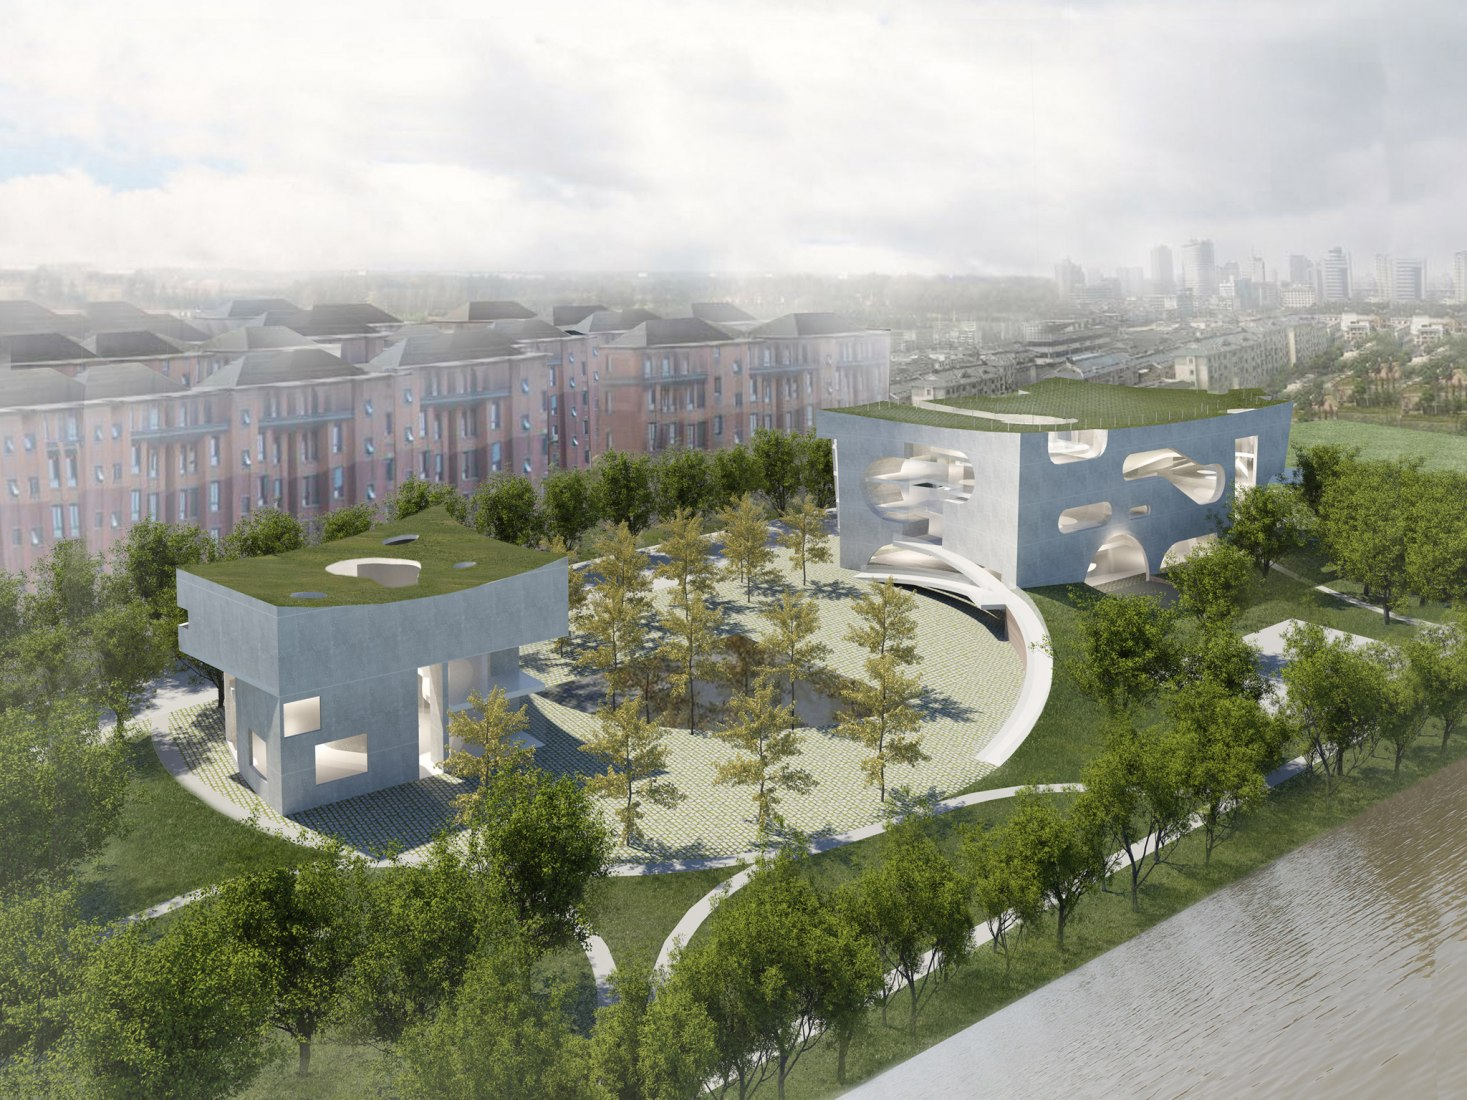 Surrounding view. Cultural and Health Center in Shanghai by Steven Holl Architects. Image Courtesy of Steven Holl Architects.